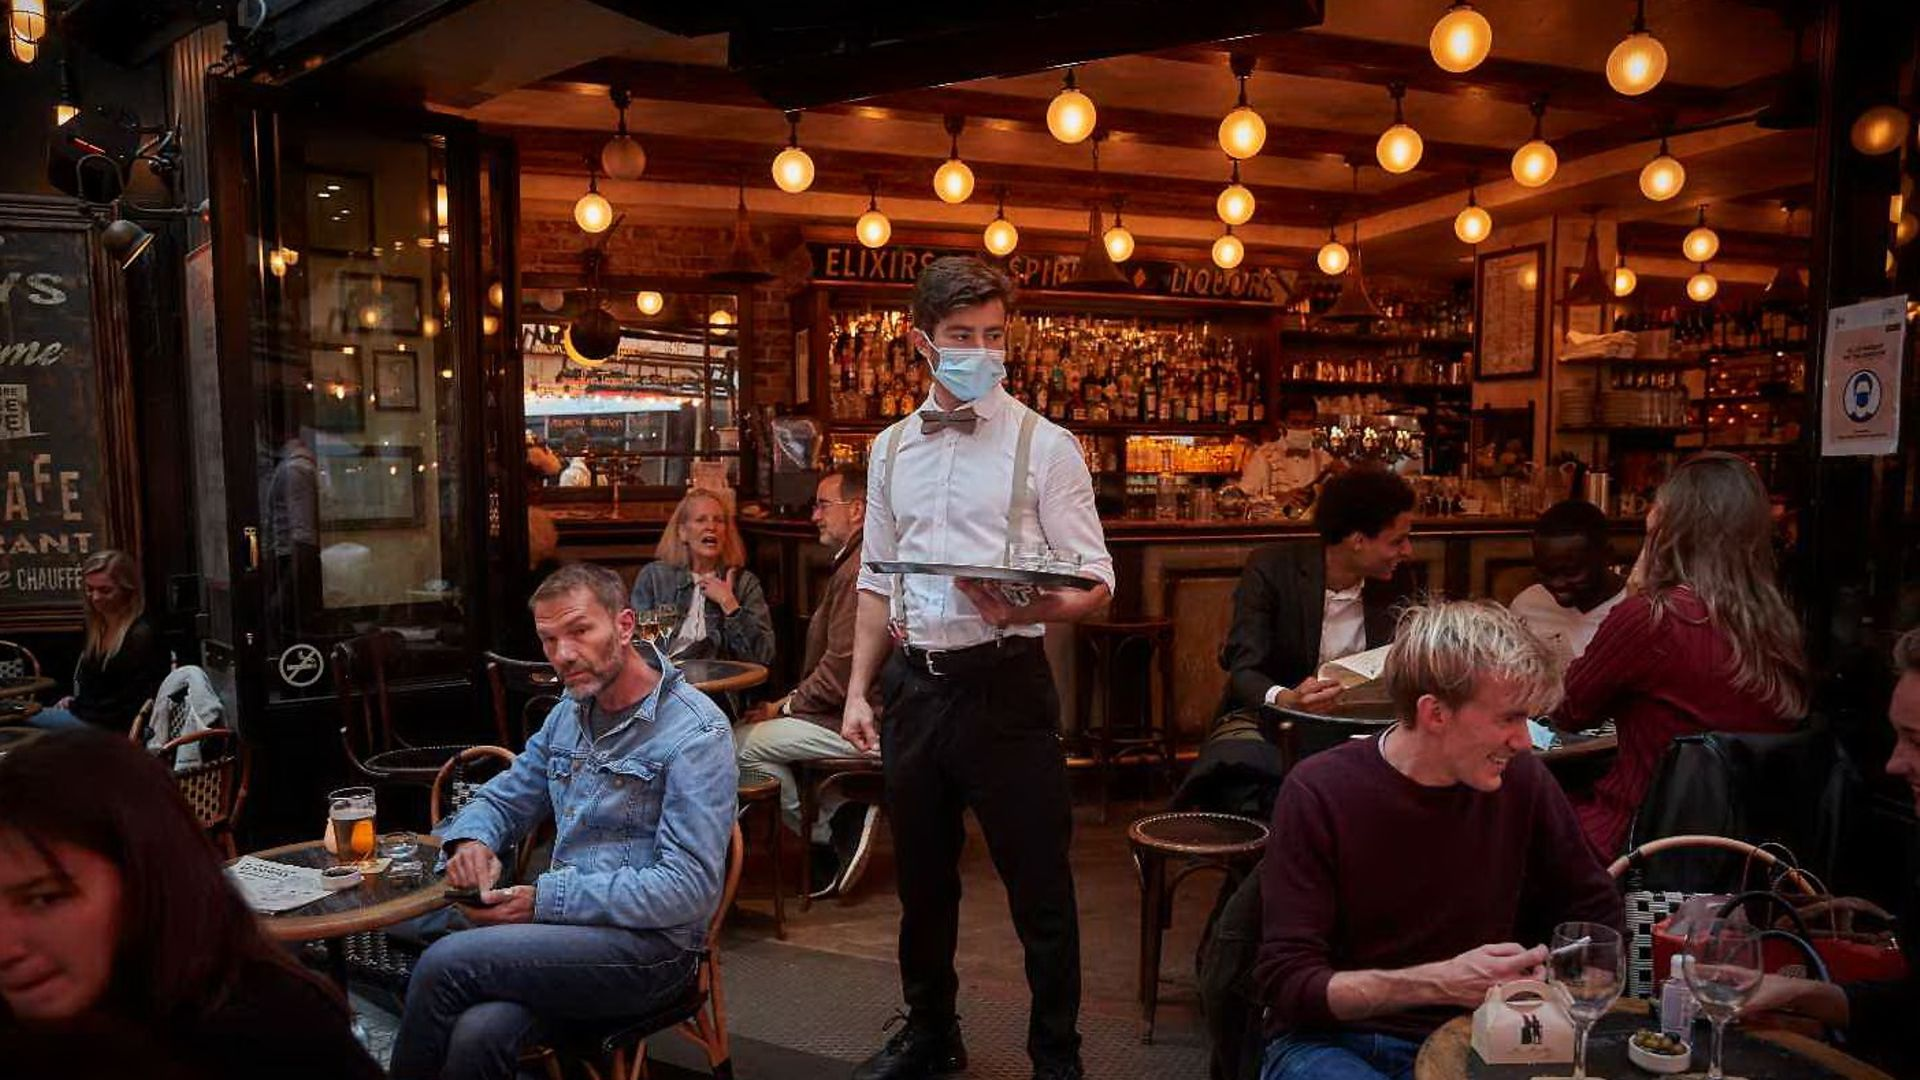 A waiter serving drinkers during the pandemic in Paris - Credit: Kiran Ridley/Getty Images